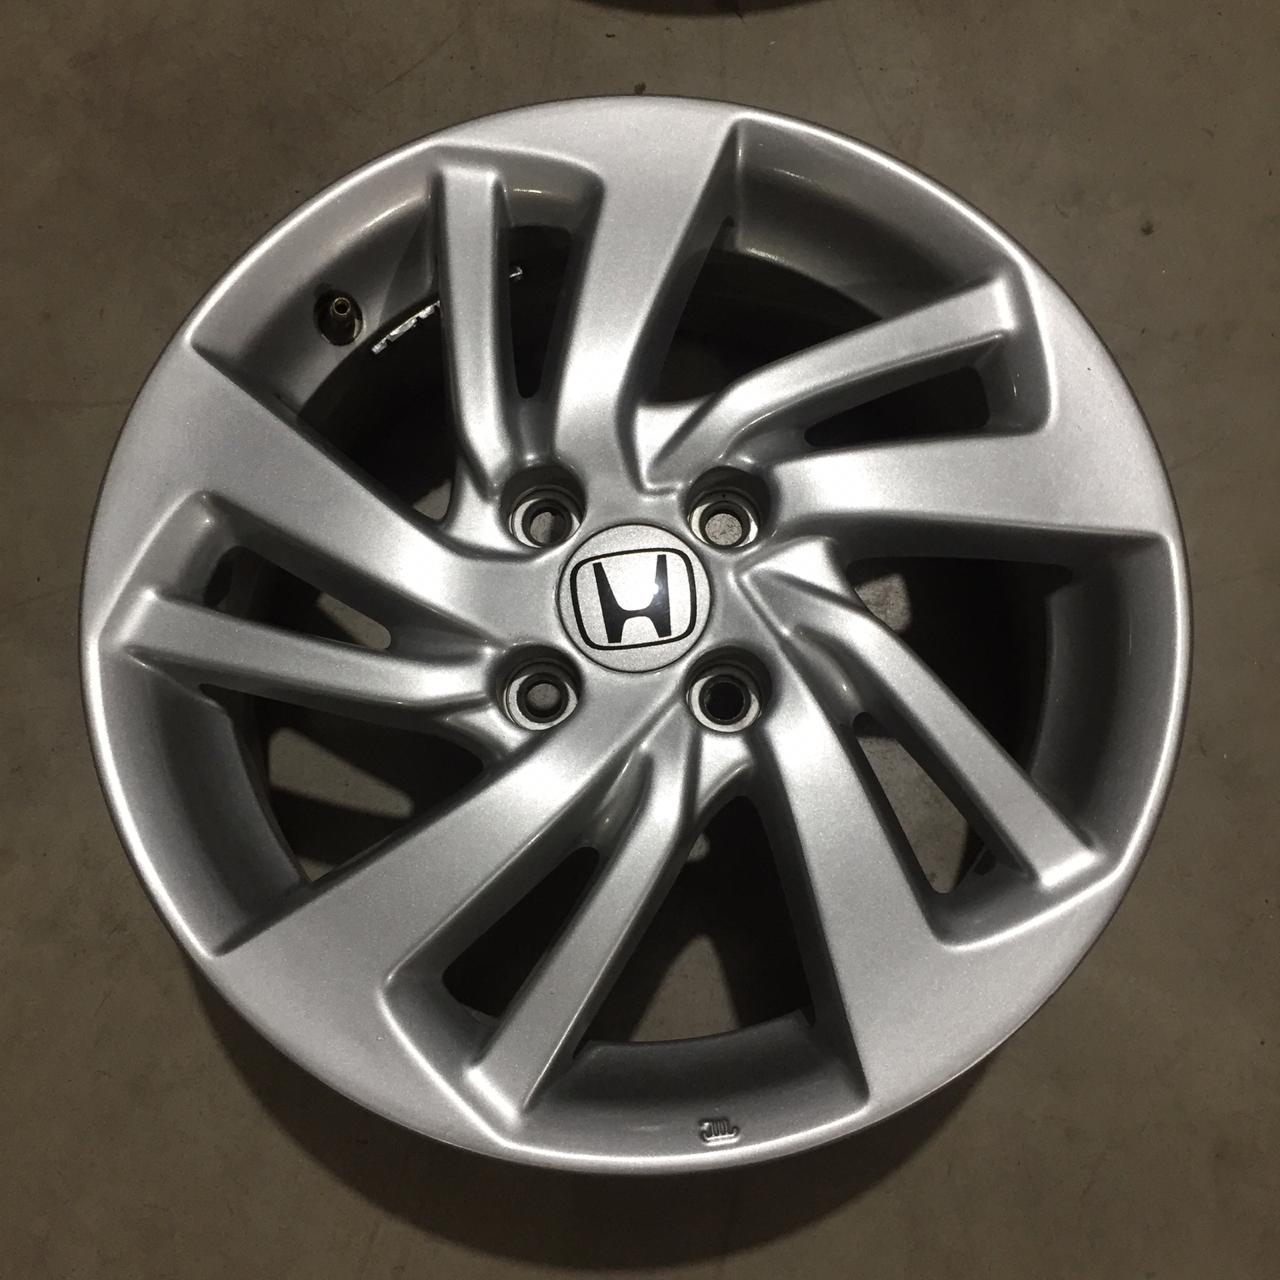 RODA ARO 15 - HONDA FIT/CITY 2019 - 4X100